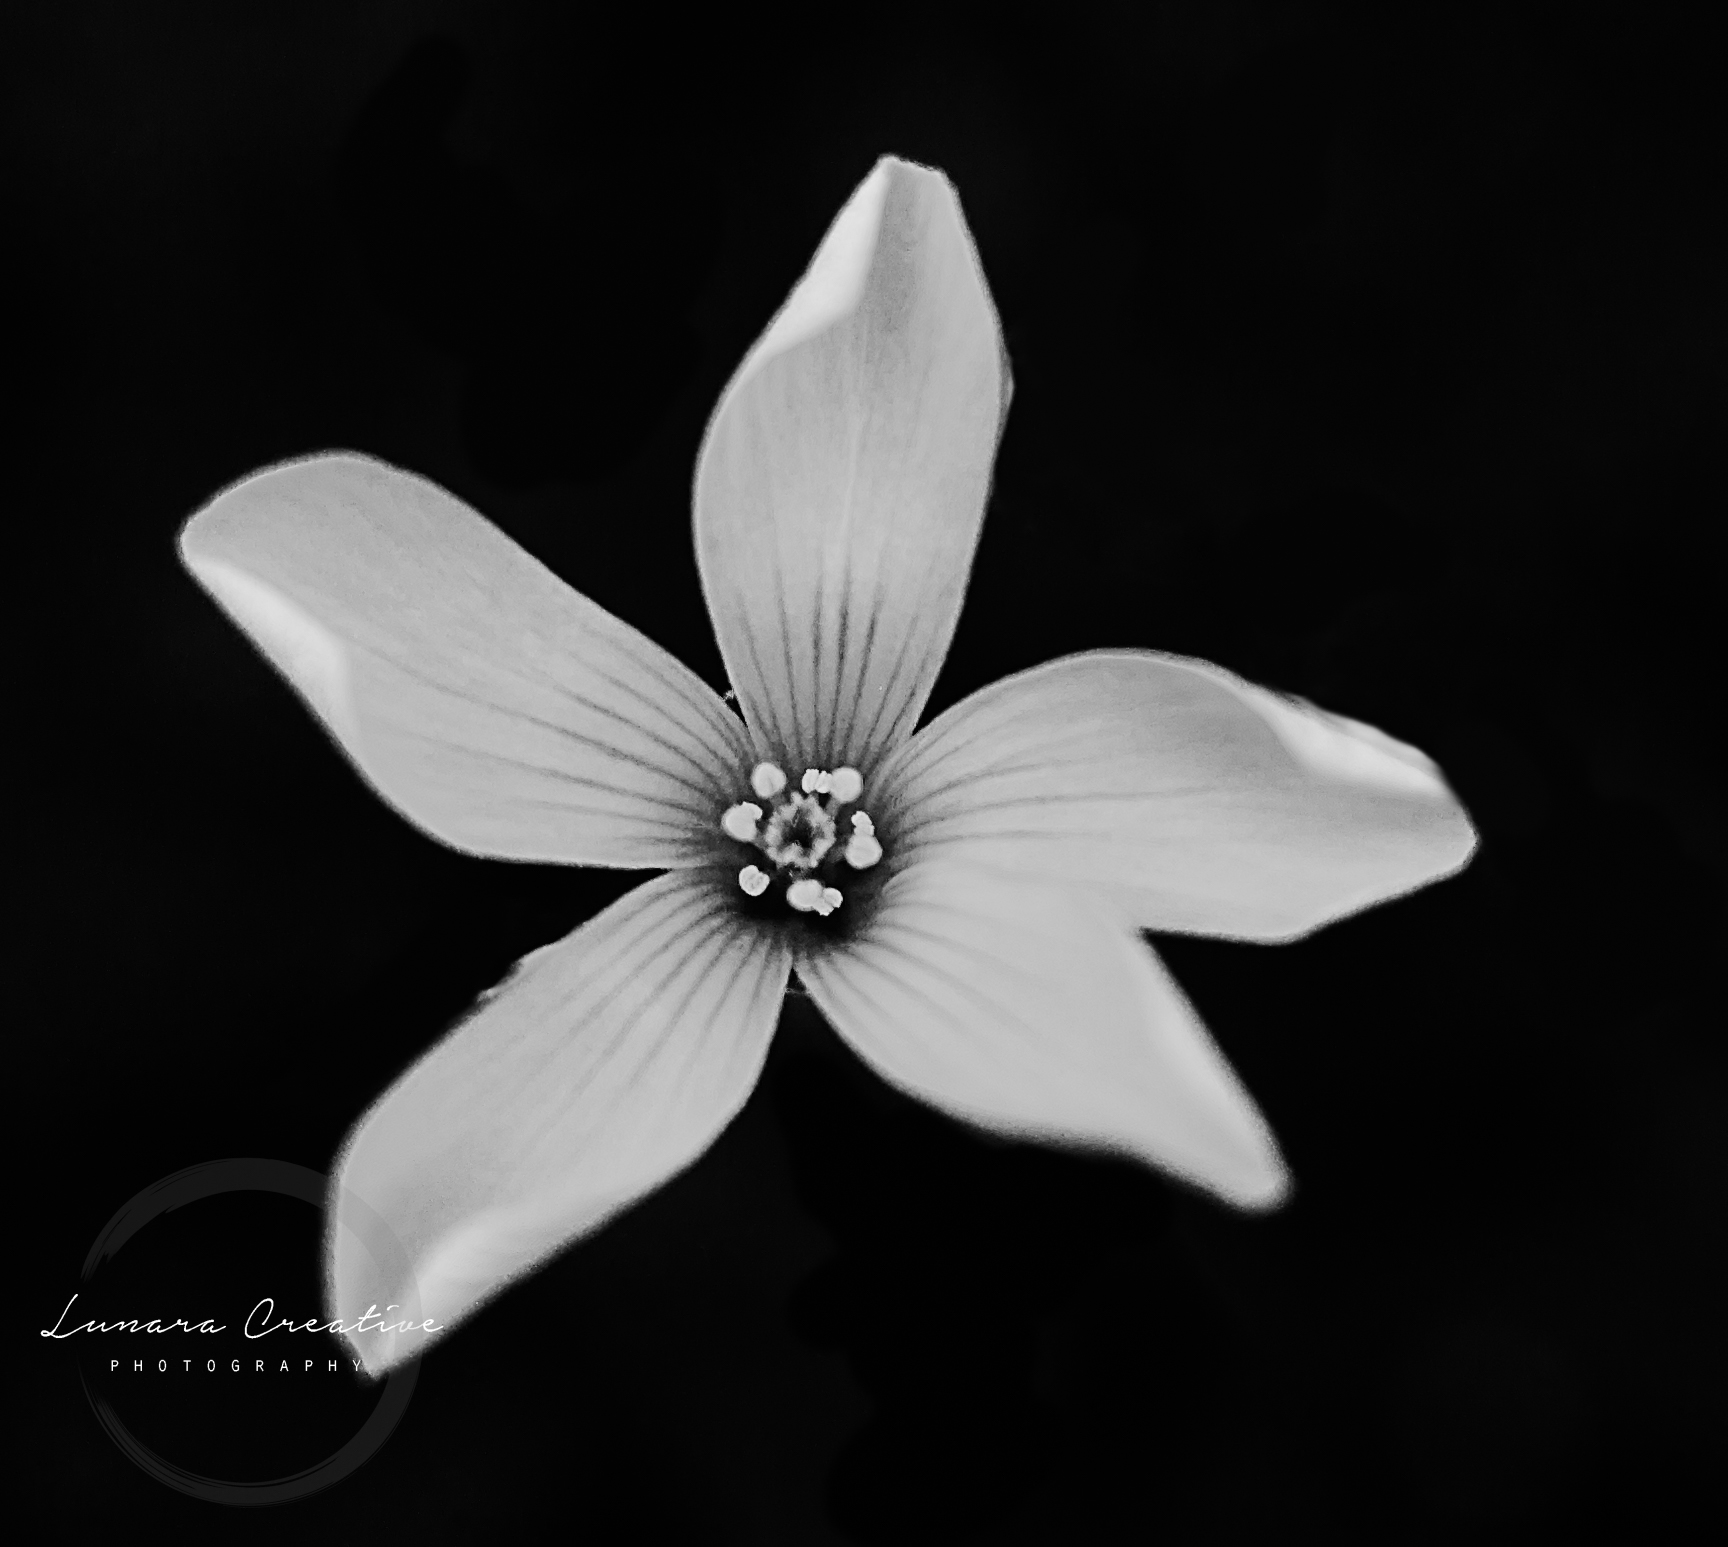 Lonely Flower - A lonely buttercup shot on a black background. by Lunara Creative Photography